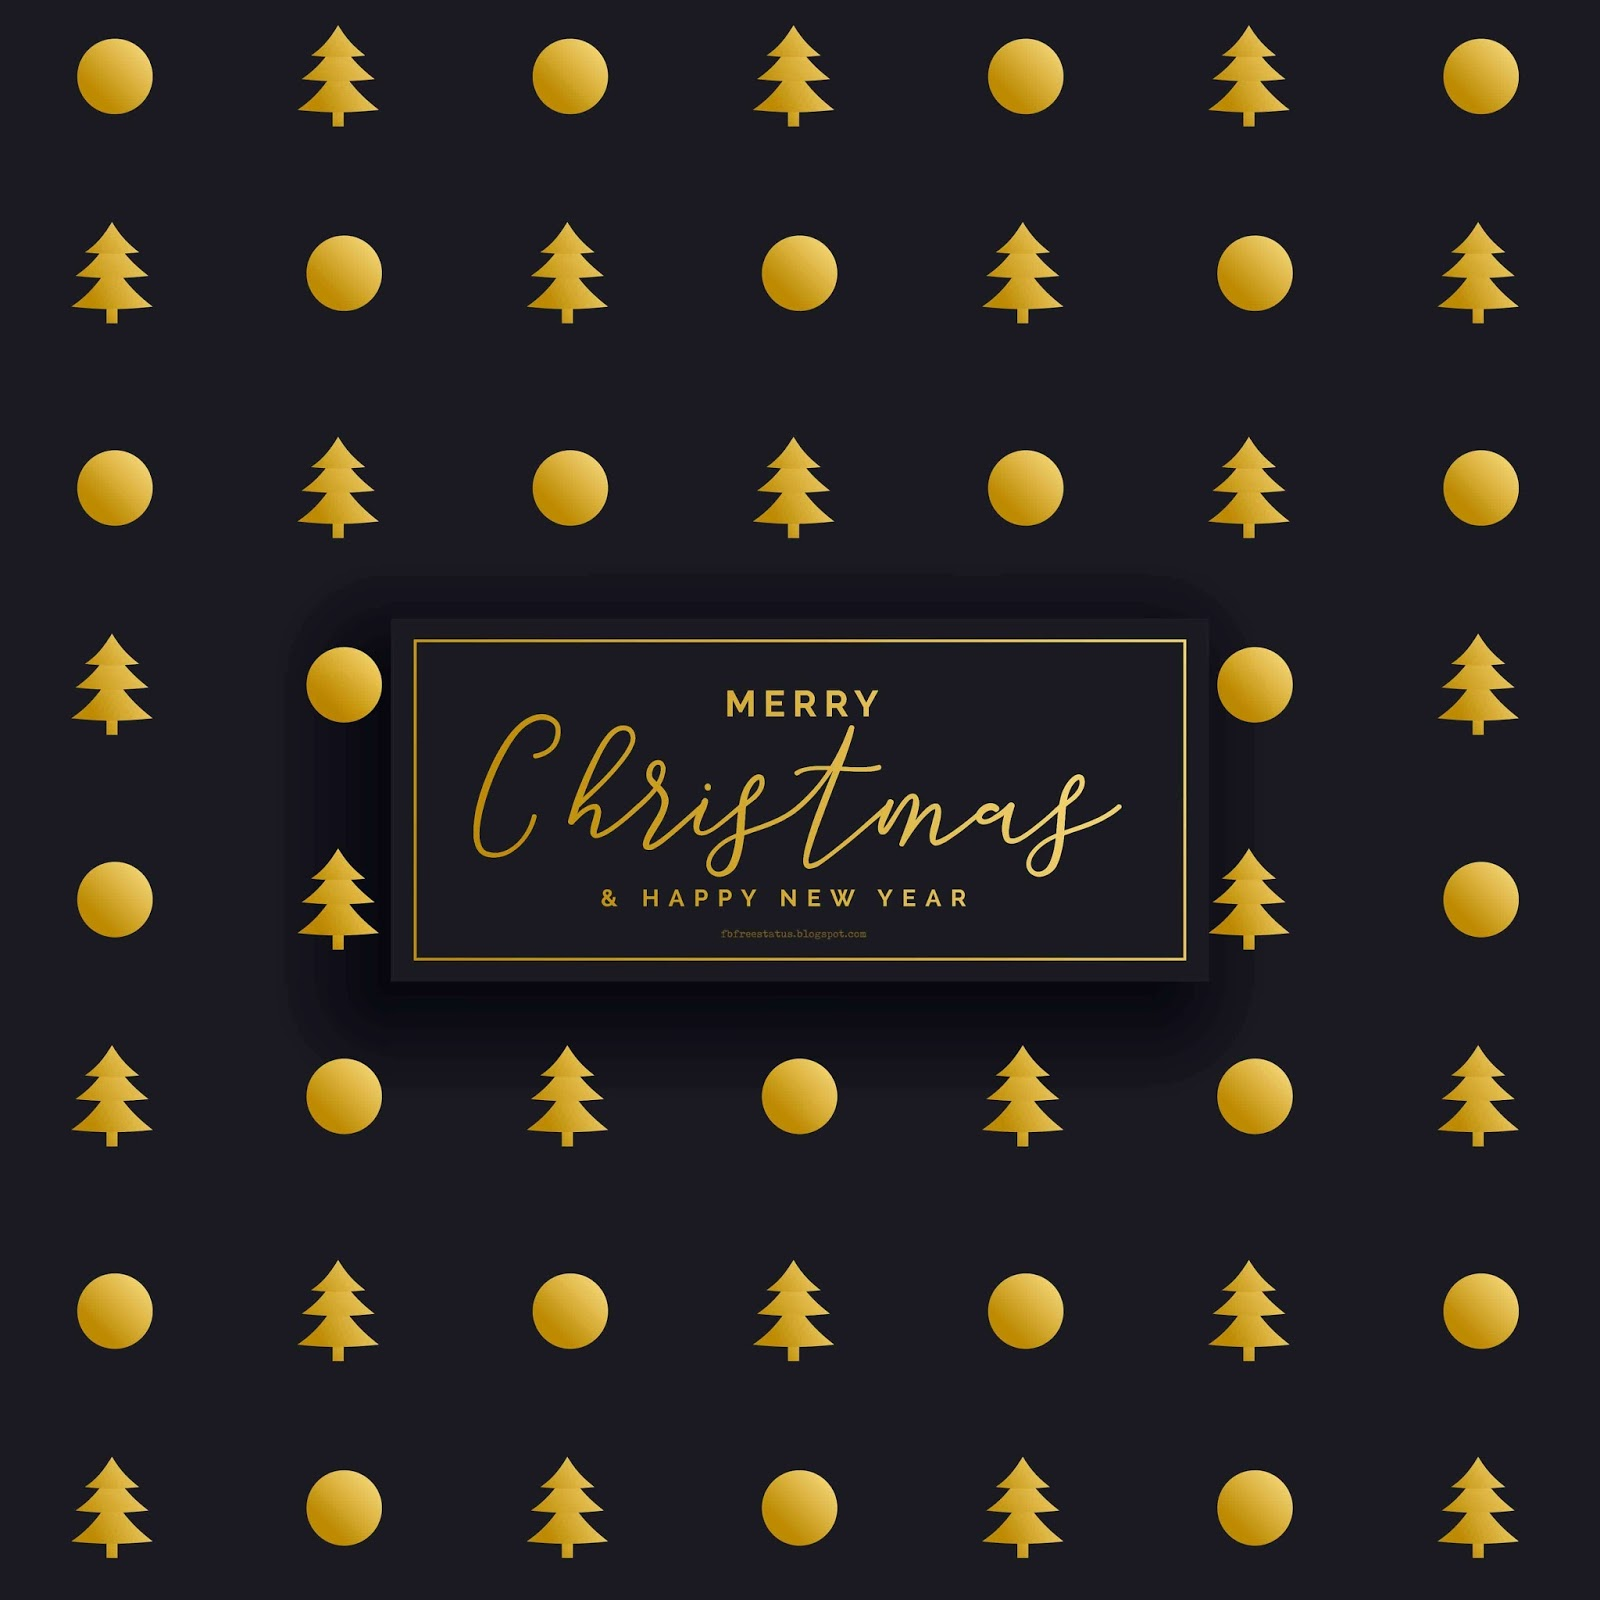 Black Christmas Wallpaper Free